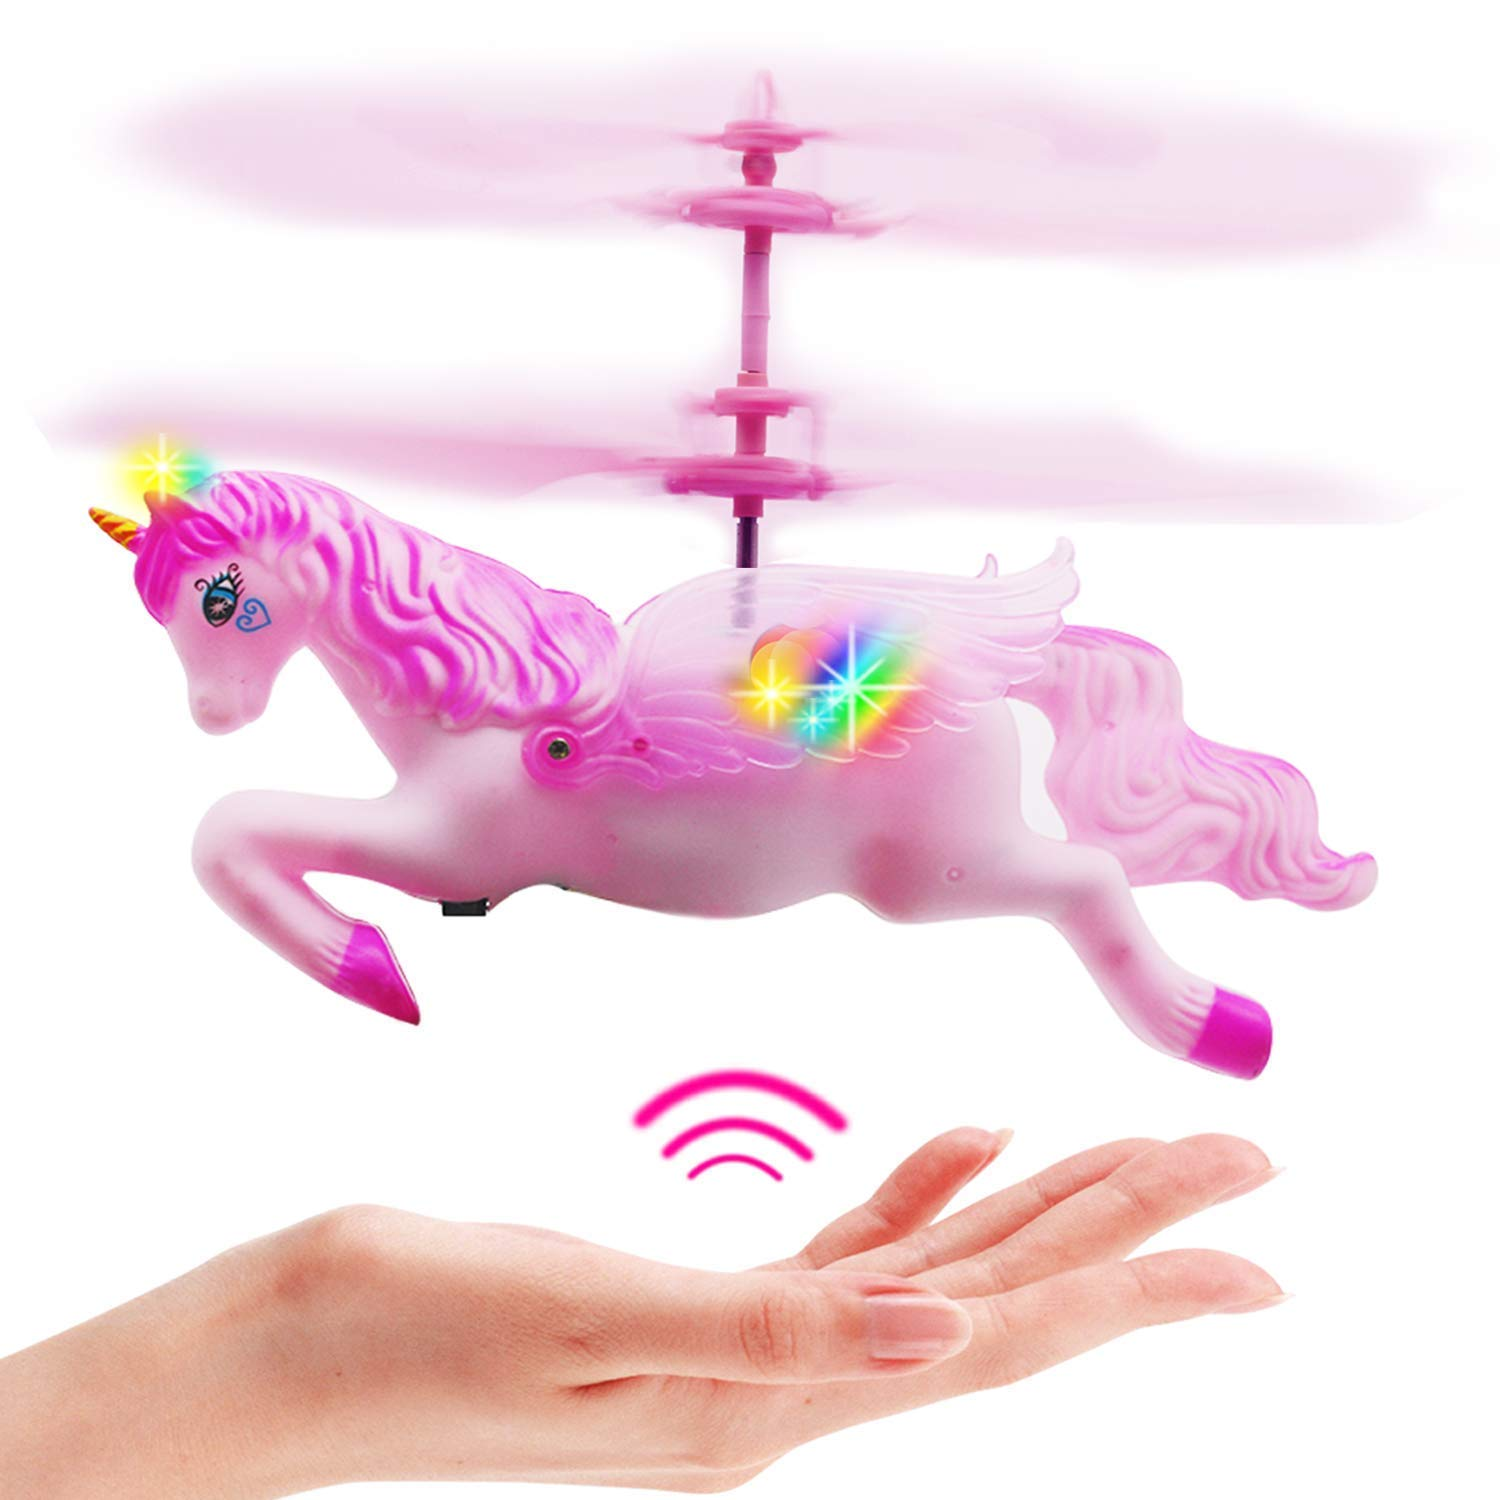 AveryLu Flying Unicorn Toys Flying Fairy Toys Pink Mini Flying Helicopter Unicorn Toy Gifts for Little Girls 8 9 10-14 Years Old Up Birthday Xmas Party Supplies by litytlen To